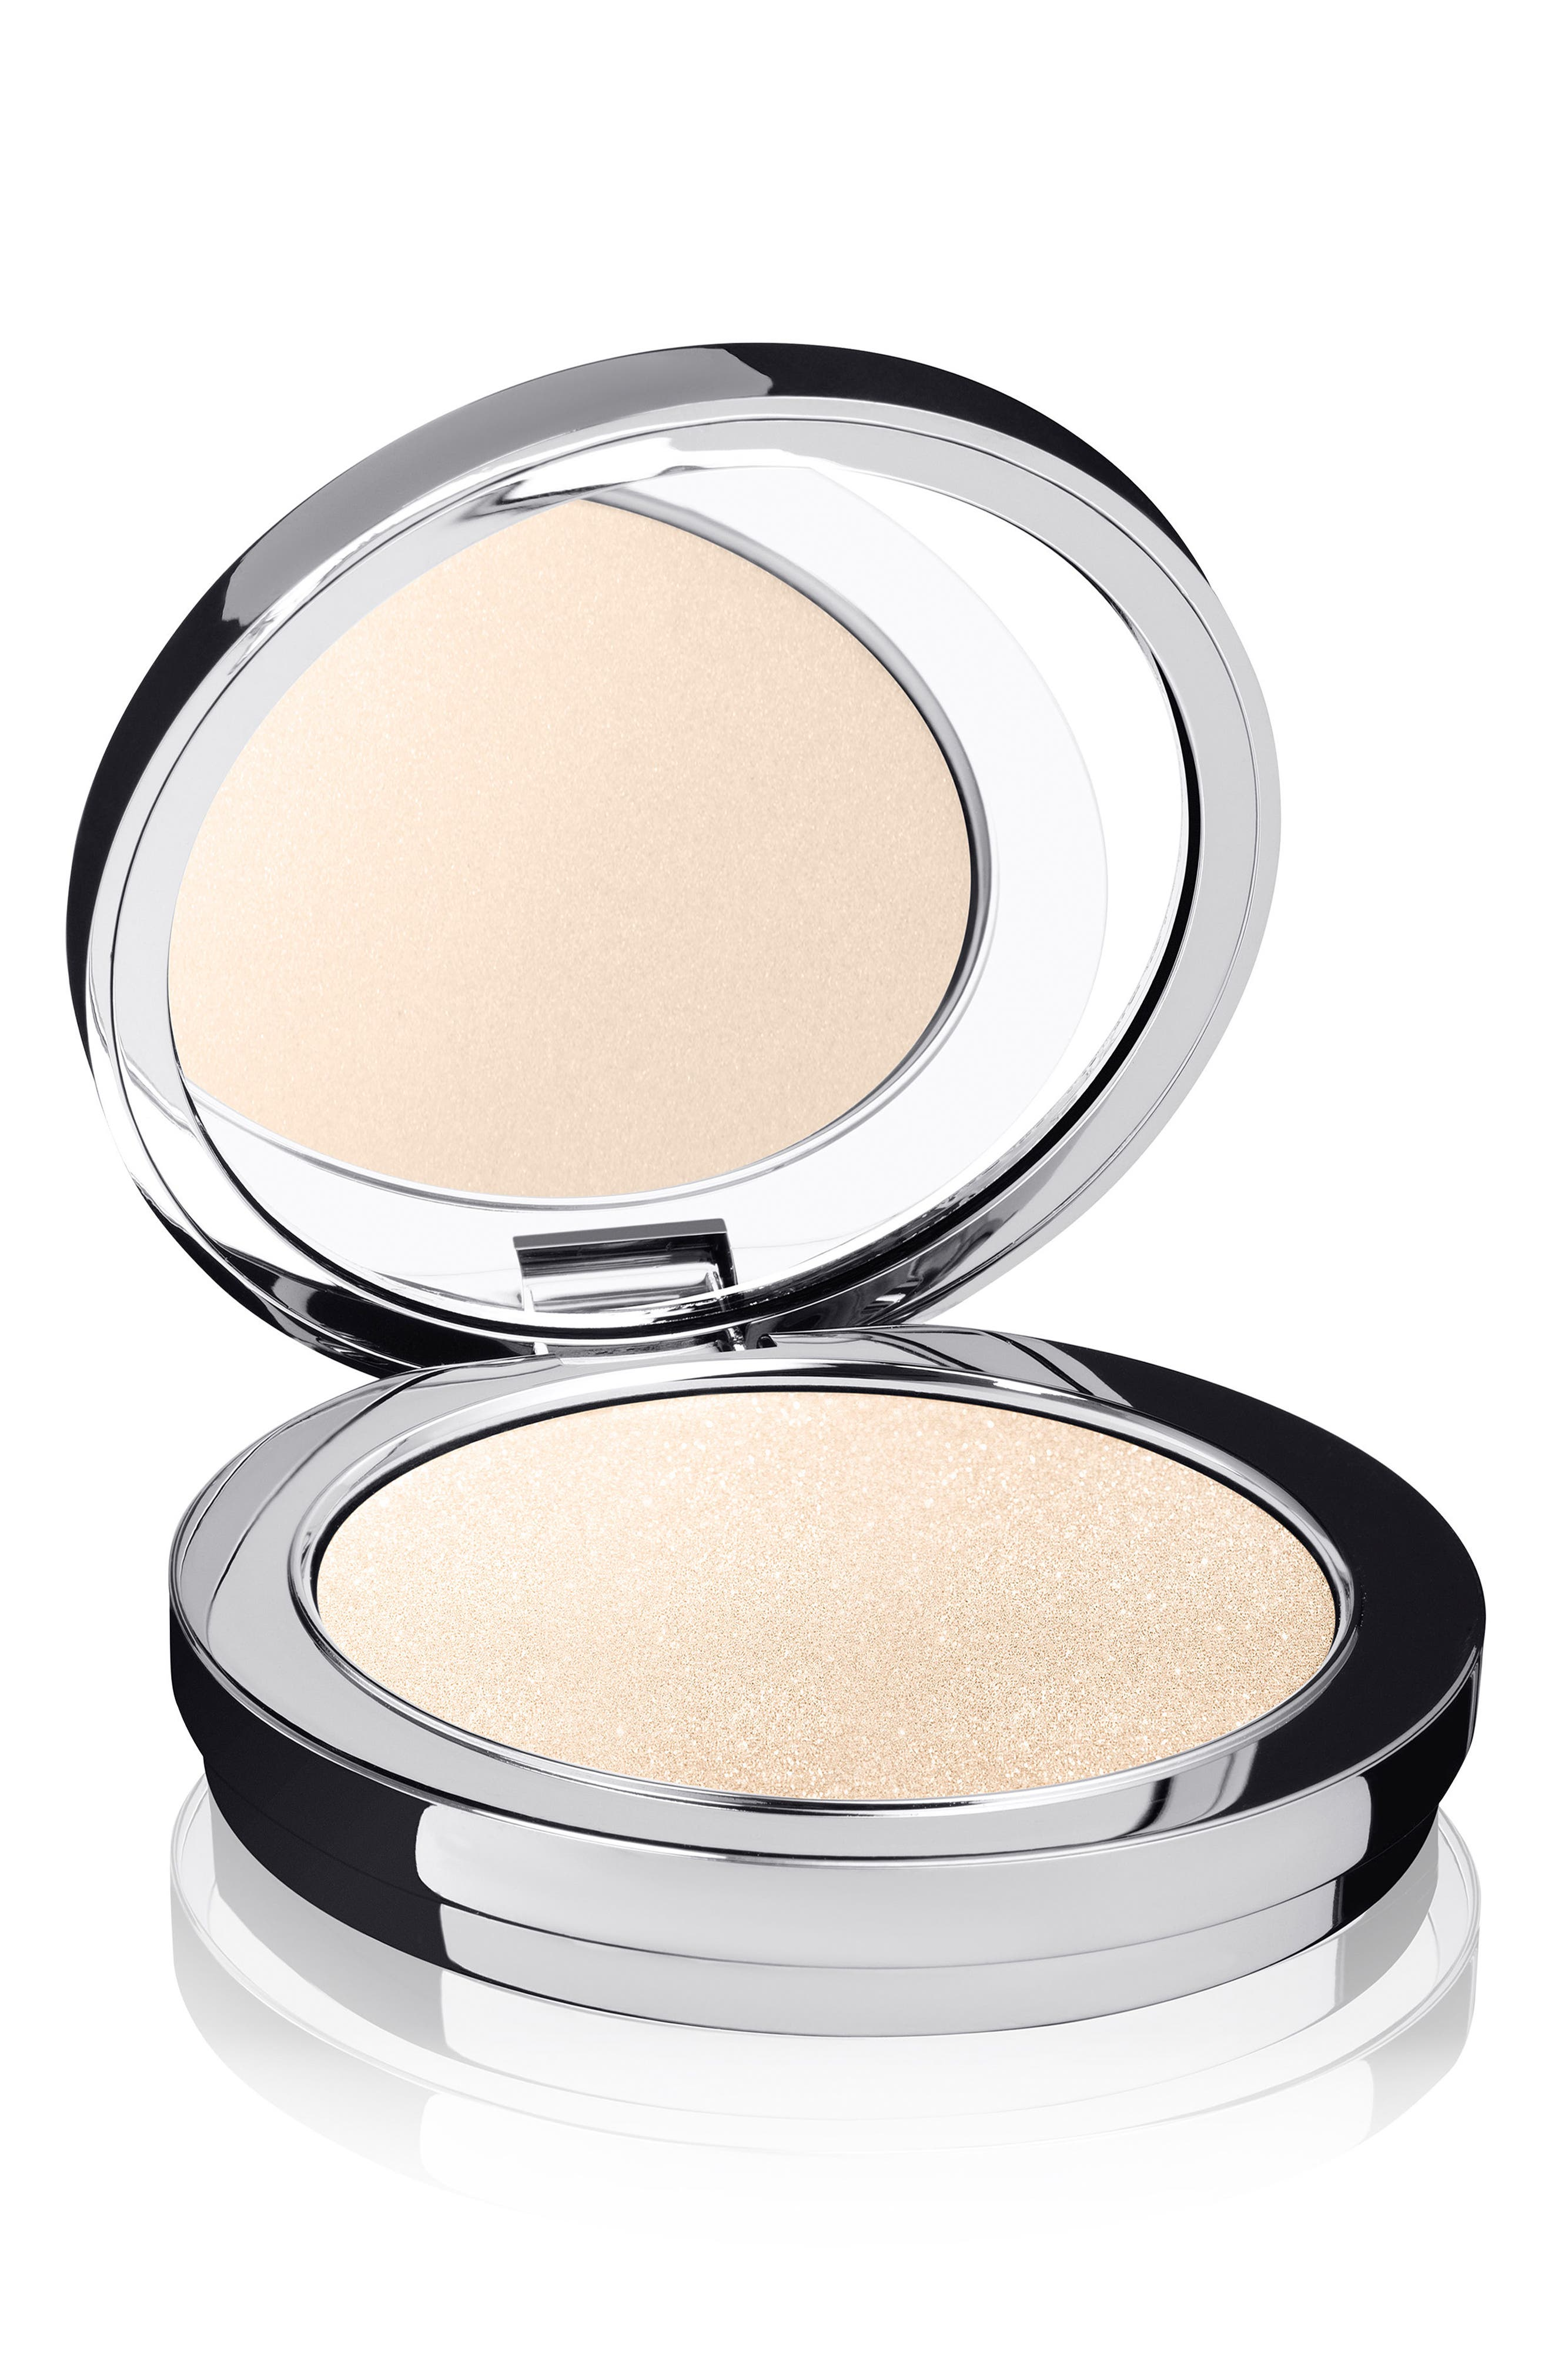 SPACE.NK.apothecary Rodial Instaglam<sup>™</sup> Deluxe Highlighting Powder Compact,                         Main,                         color, 2